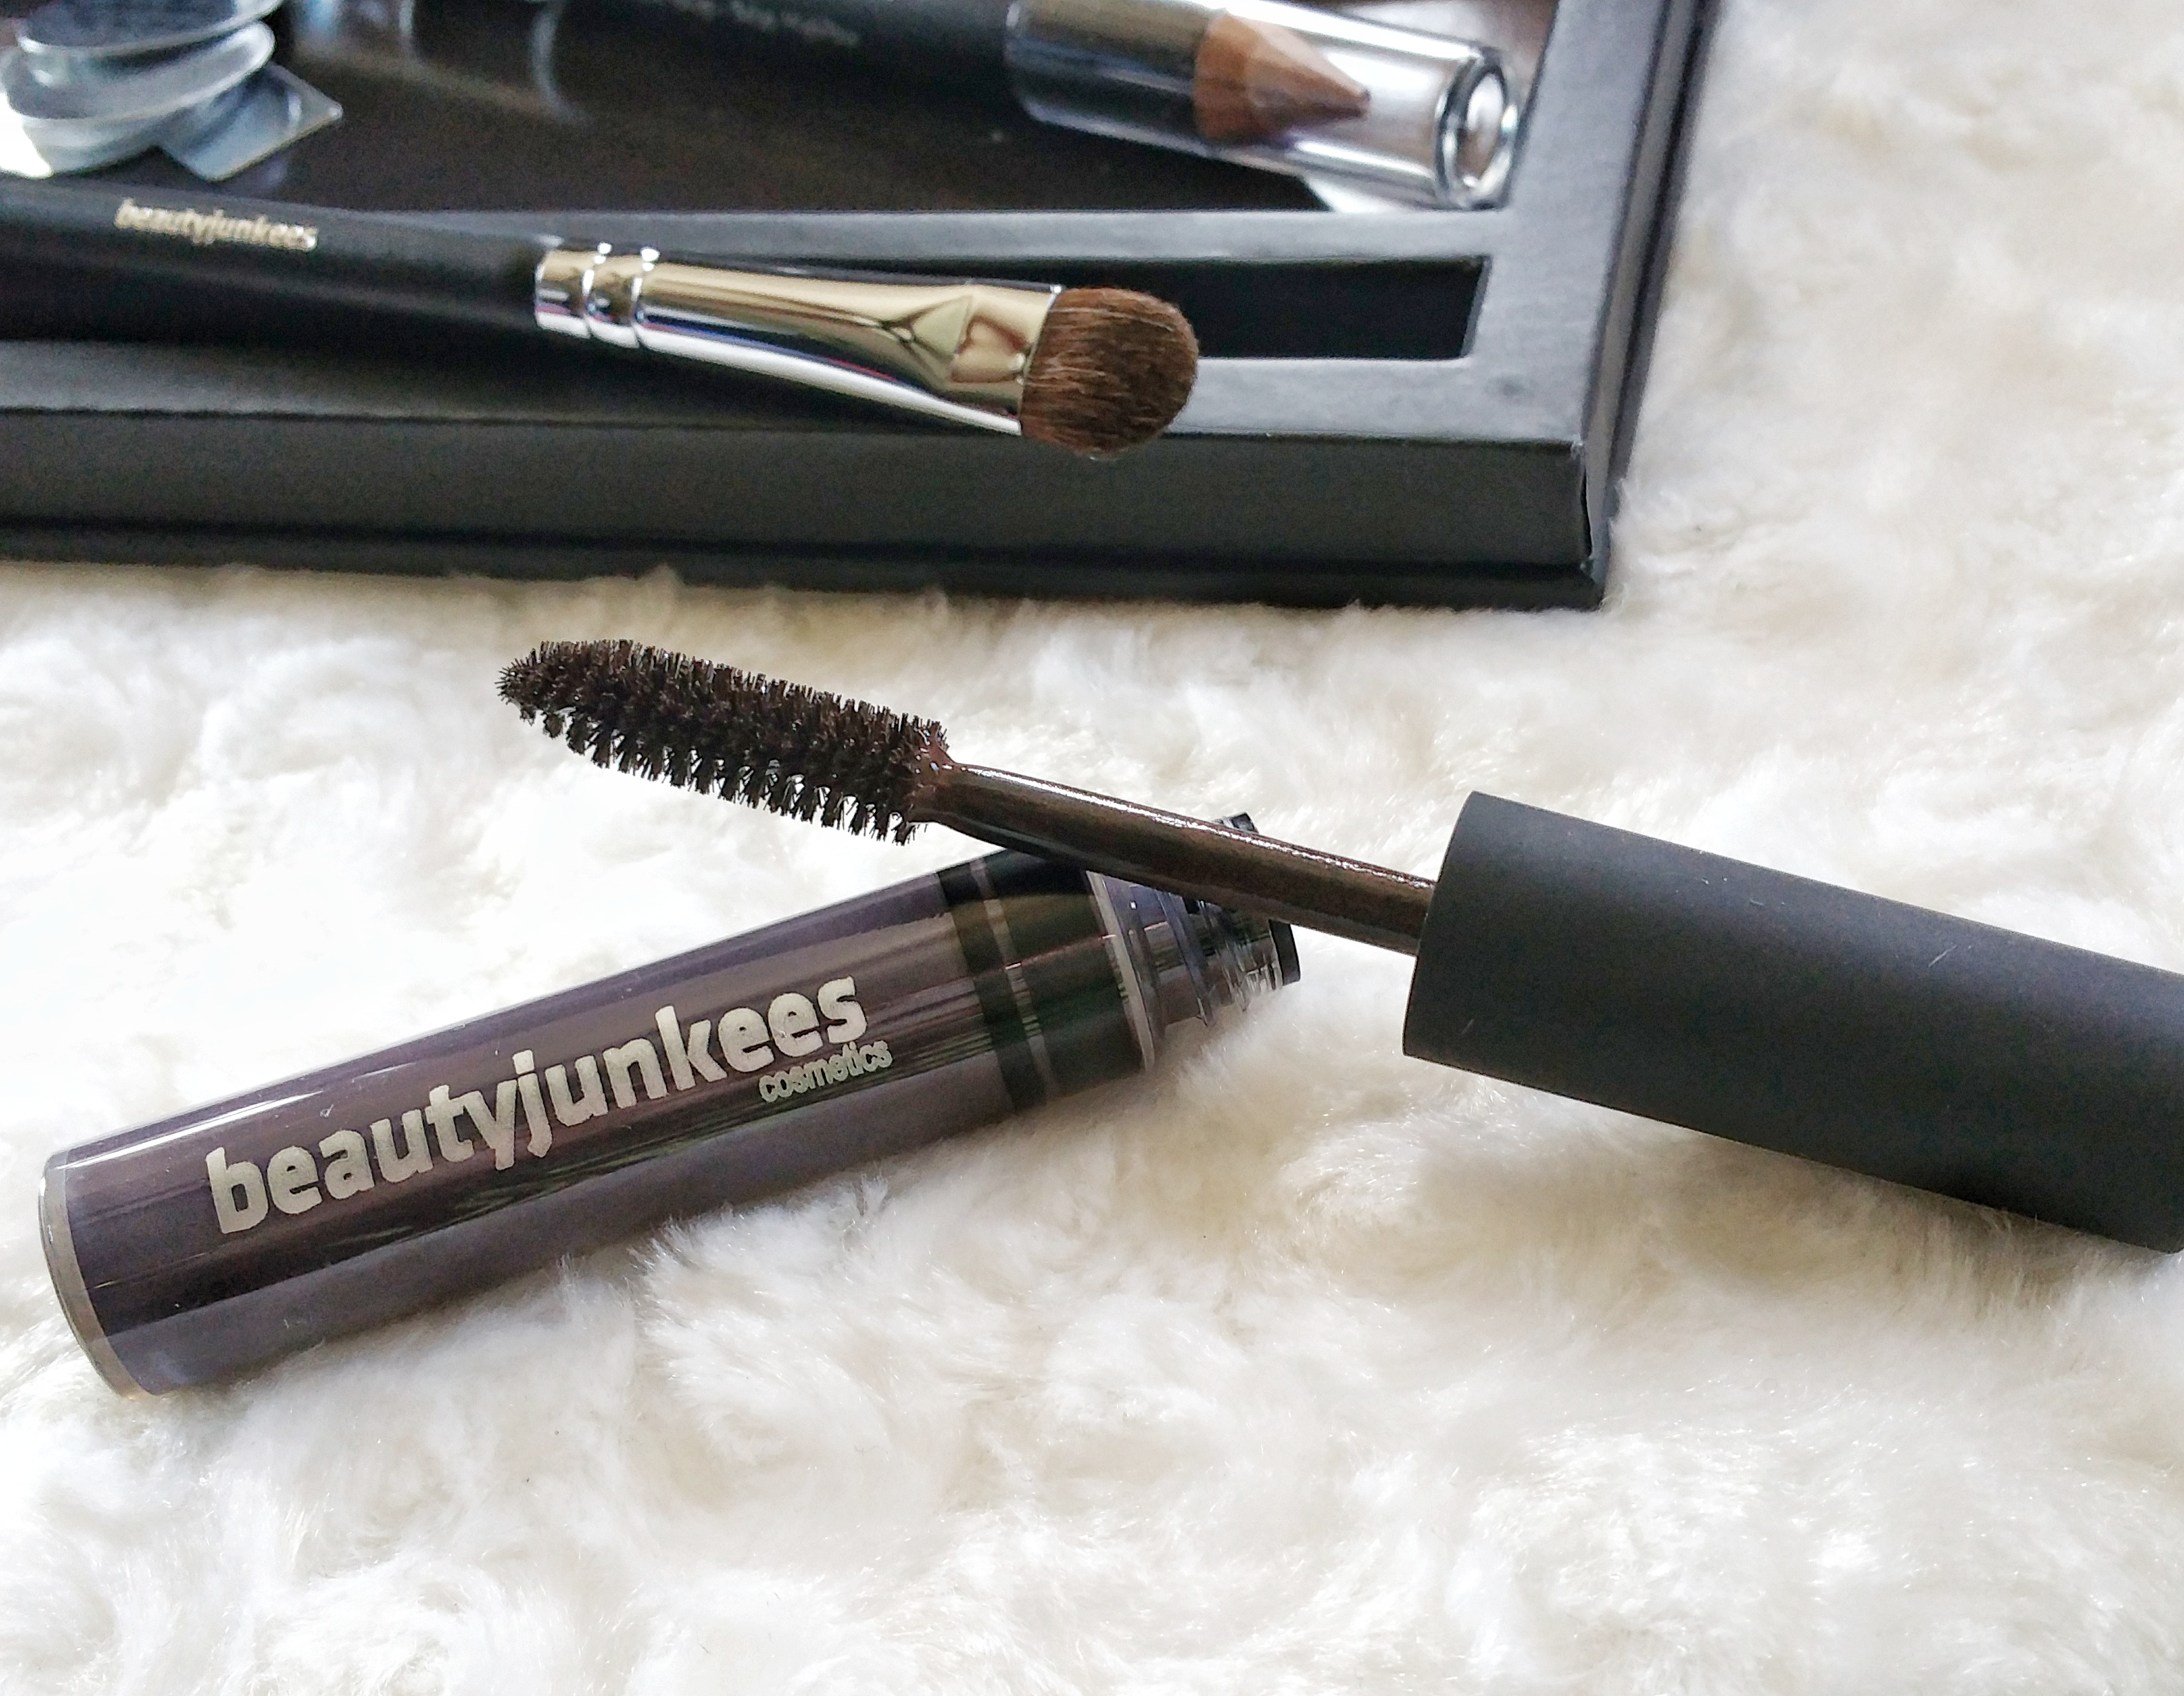 beauty junkees, affordable products, cosmetics, makeup, makeup brush, magnetic palette, z palette dupe, lip pumice, eye brows, brow tint gel, makeup brushes, concealer, pencil, highlight pencil, new products, Beauty Junkees, beauty care, makeup review, review,